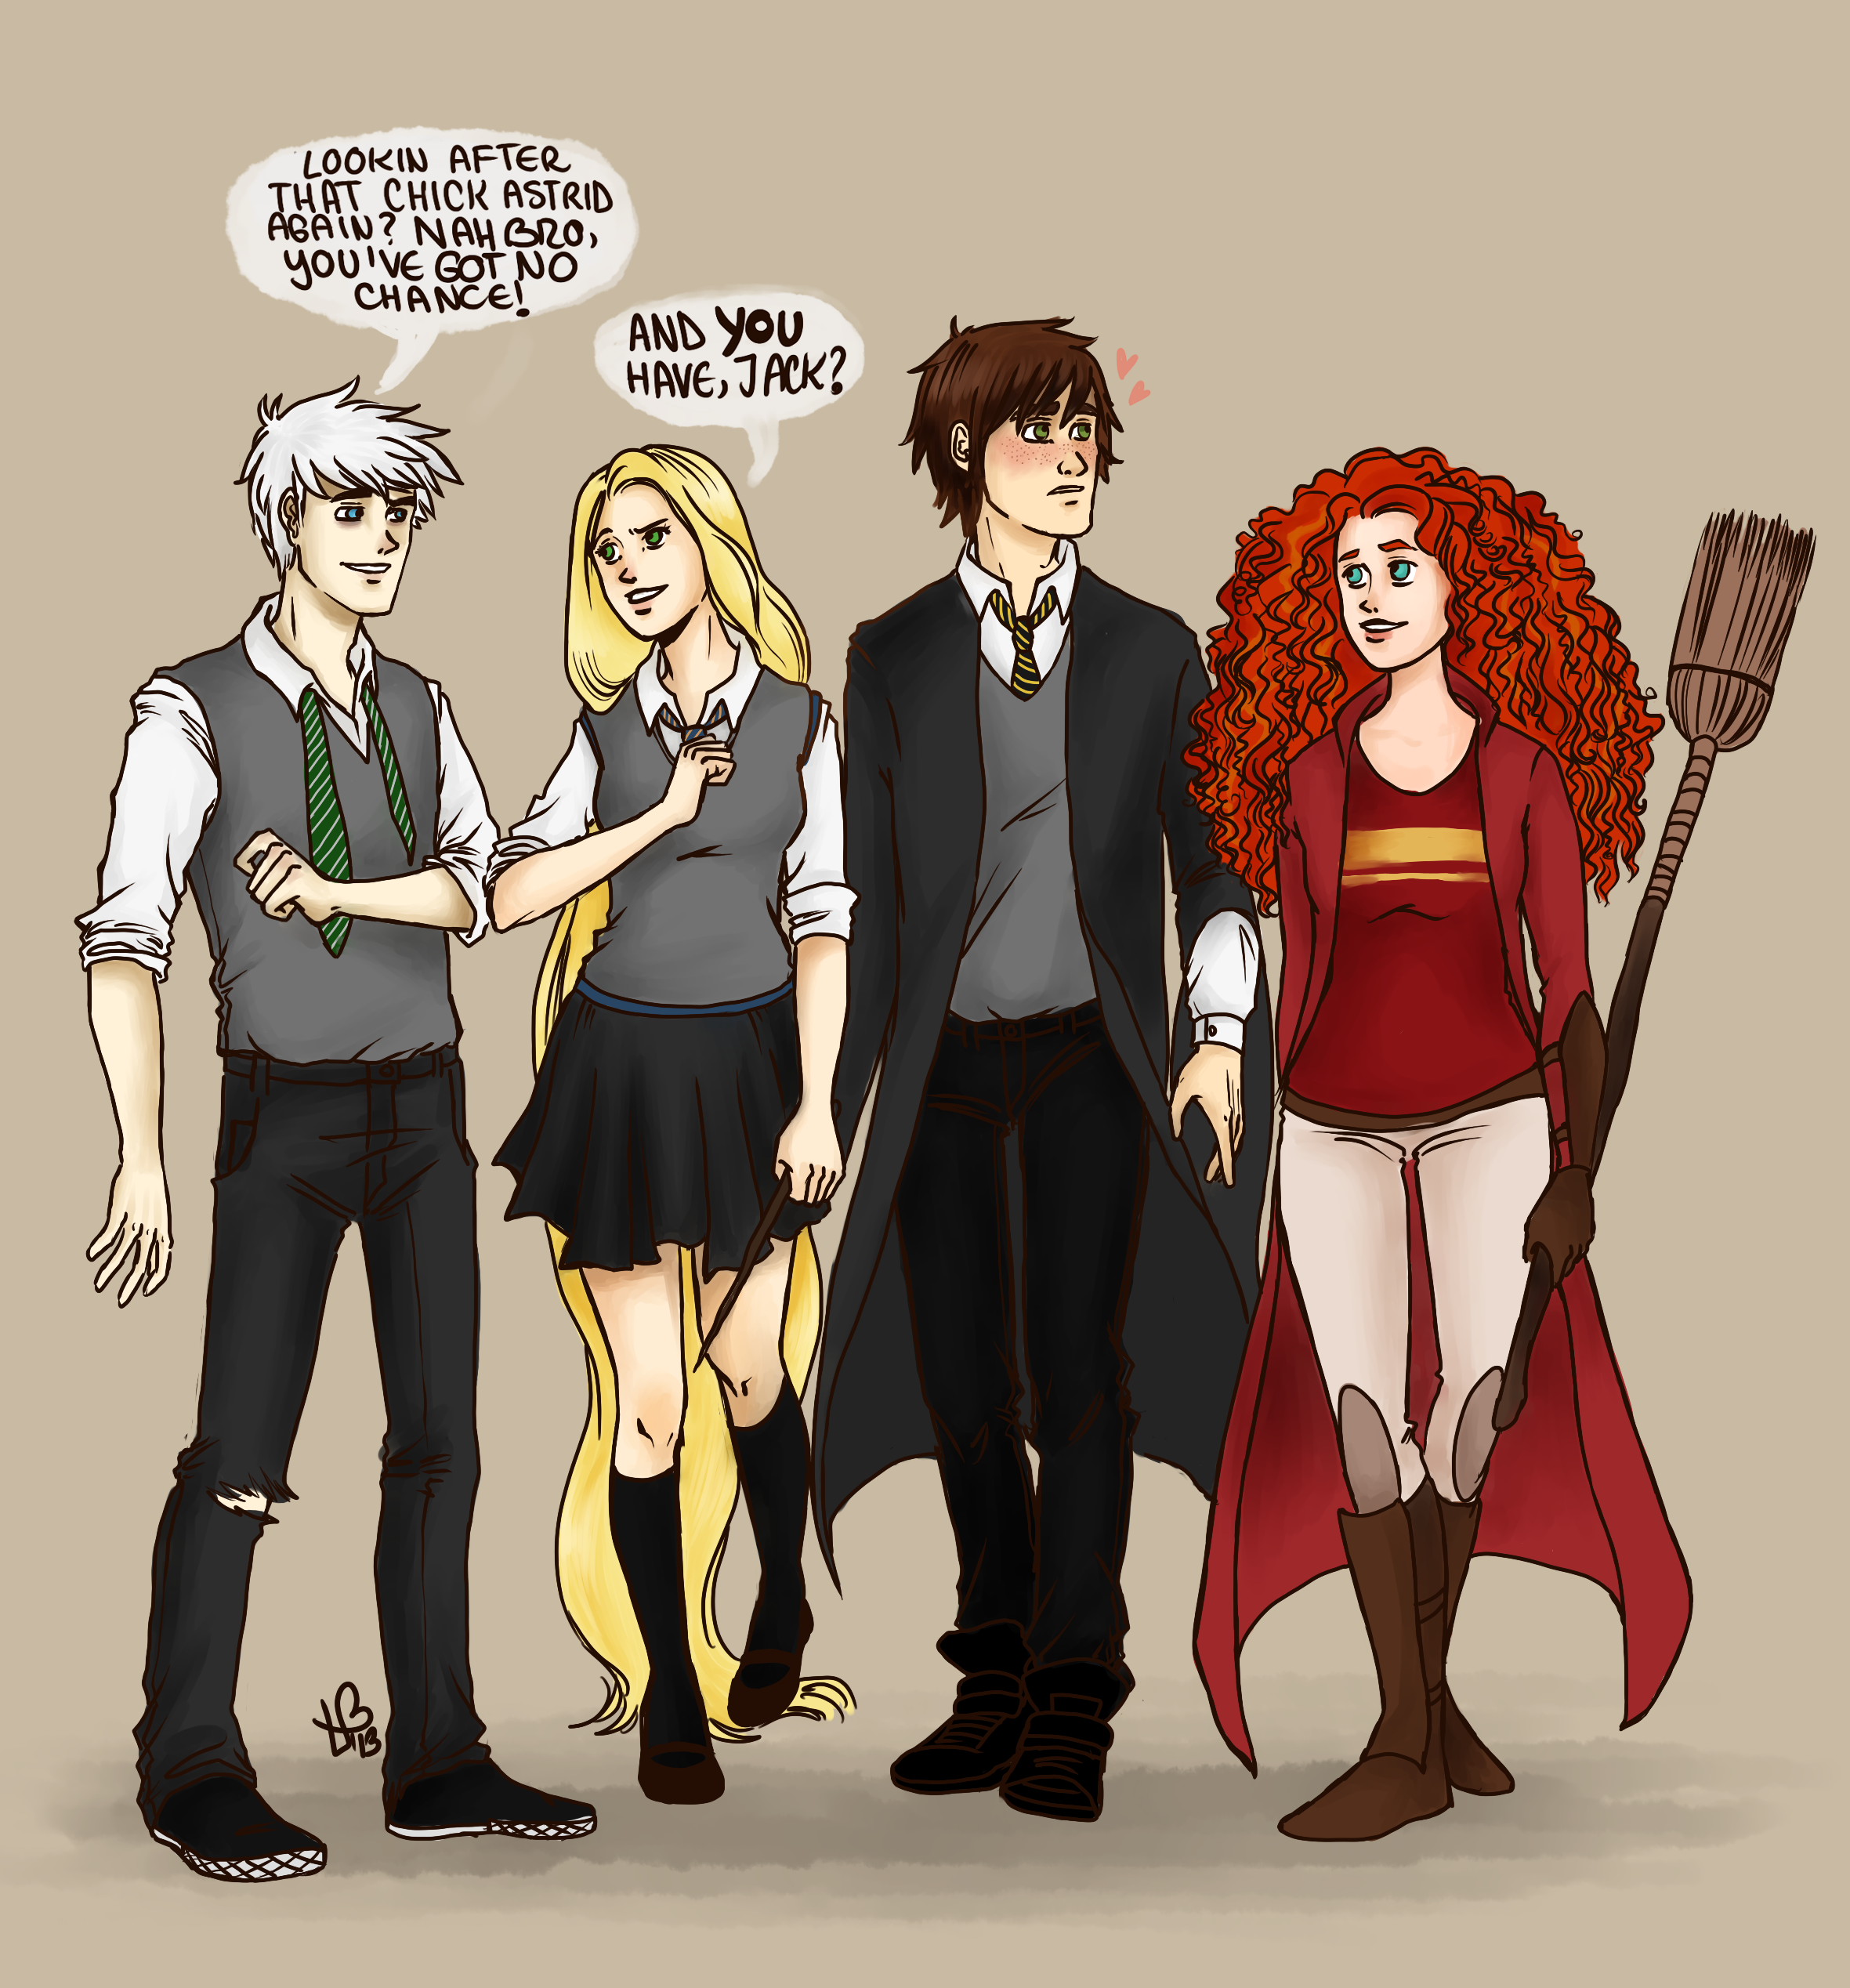 The Big Four At Hogwarts The Big Four Harry Potter Crossover By Lilyscribbles Disney Hogwarts The Big Four Harry Potter Crossover